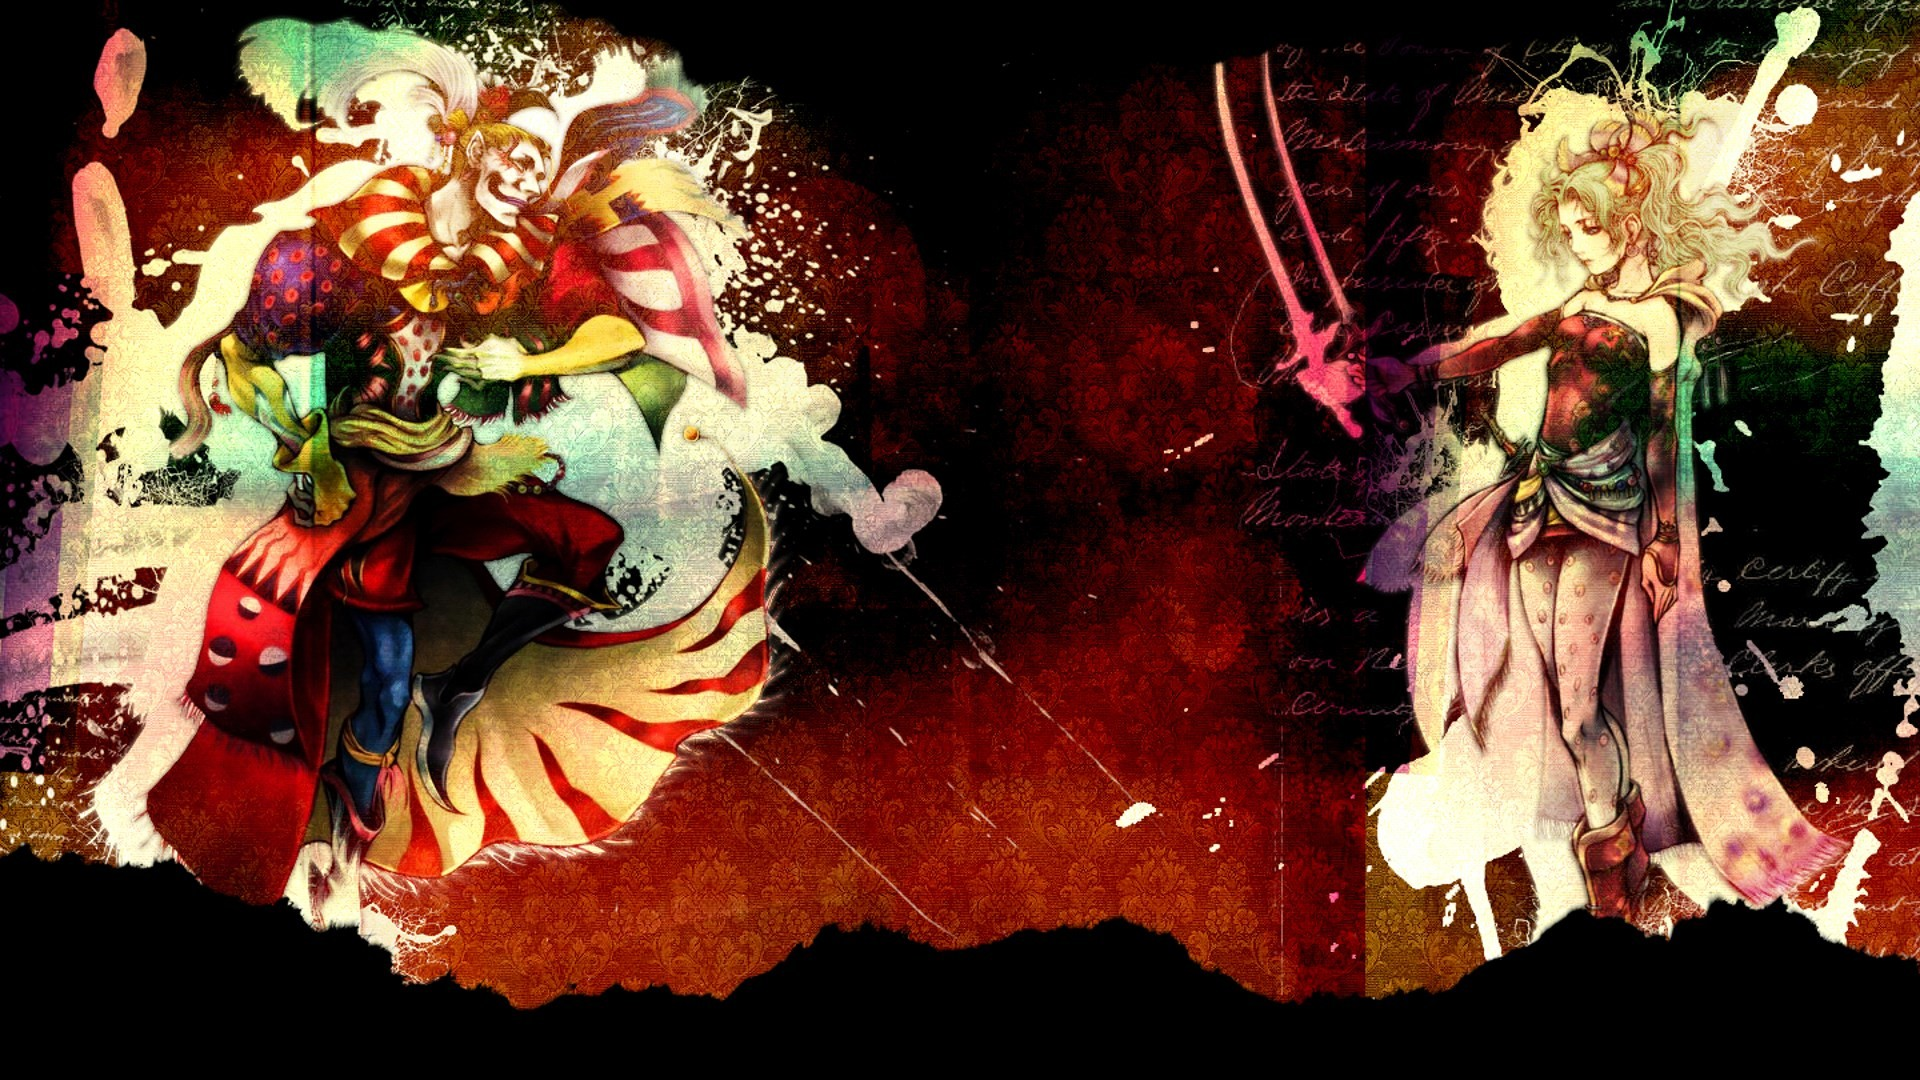 1920x1080 #1986107, final fantasy iii category - Free Awesome final fantasy iii  picture